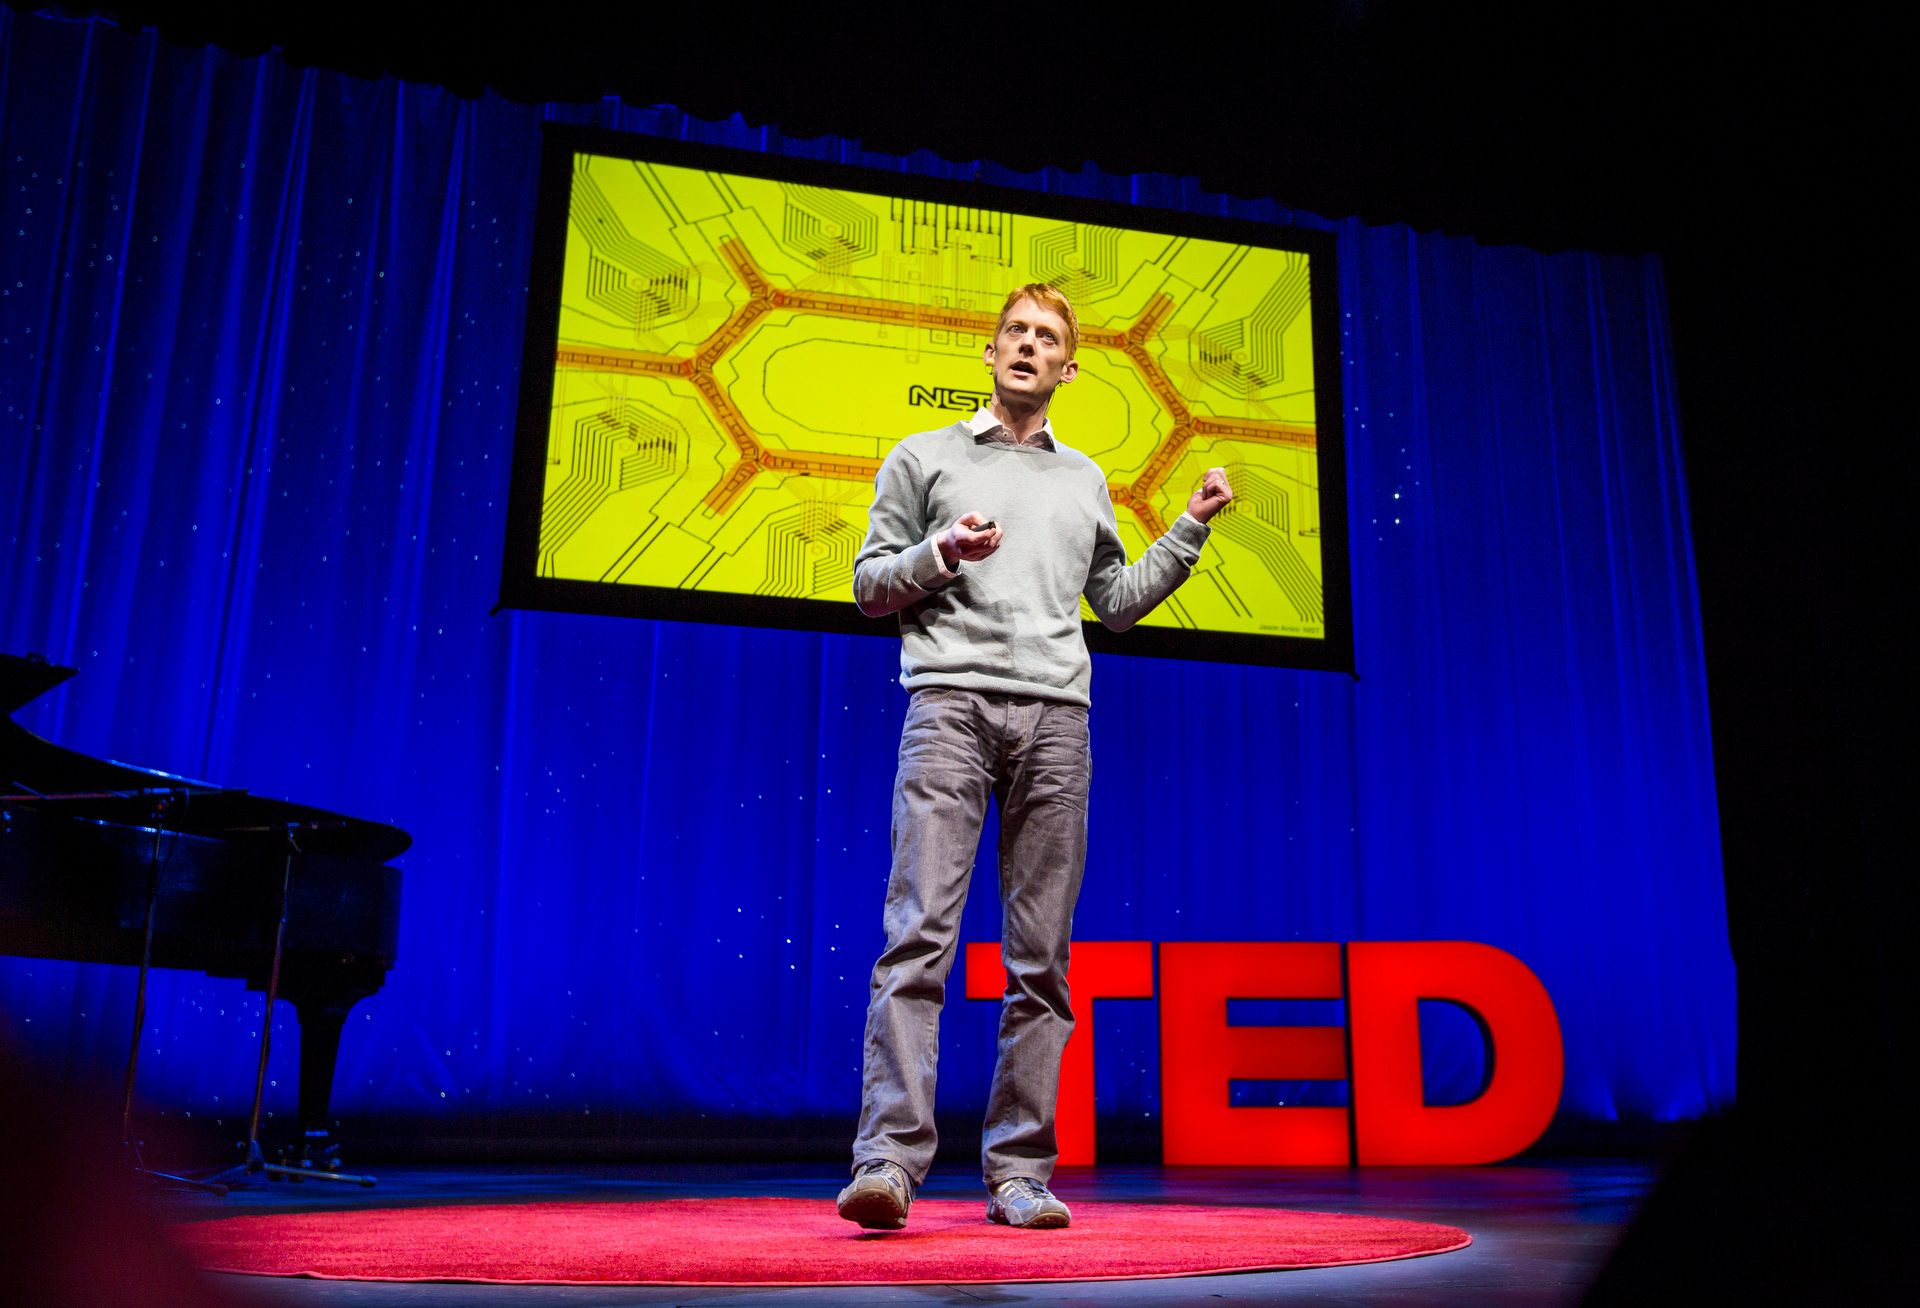 Jonathan Home on quantum computers during Fellows session 1, TED2015 - Truth and Dare, March 16-20, 2015, Kay Meek Center, West Vancouver, Canada. Photo: Ryan Lash/TED